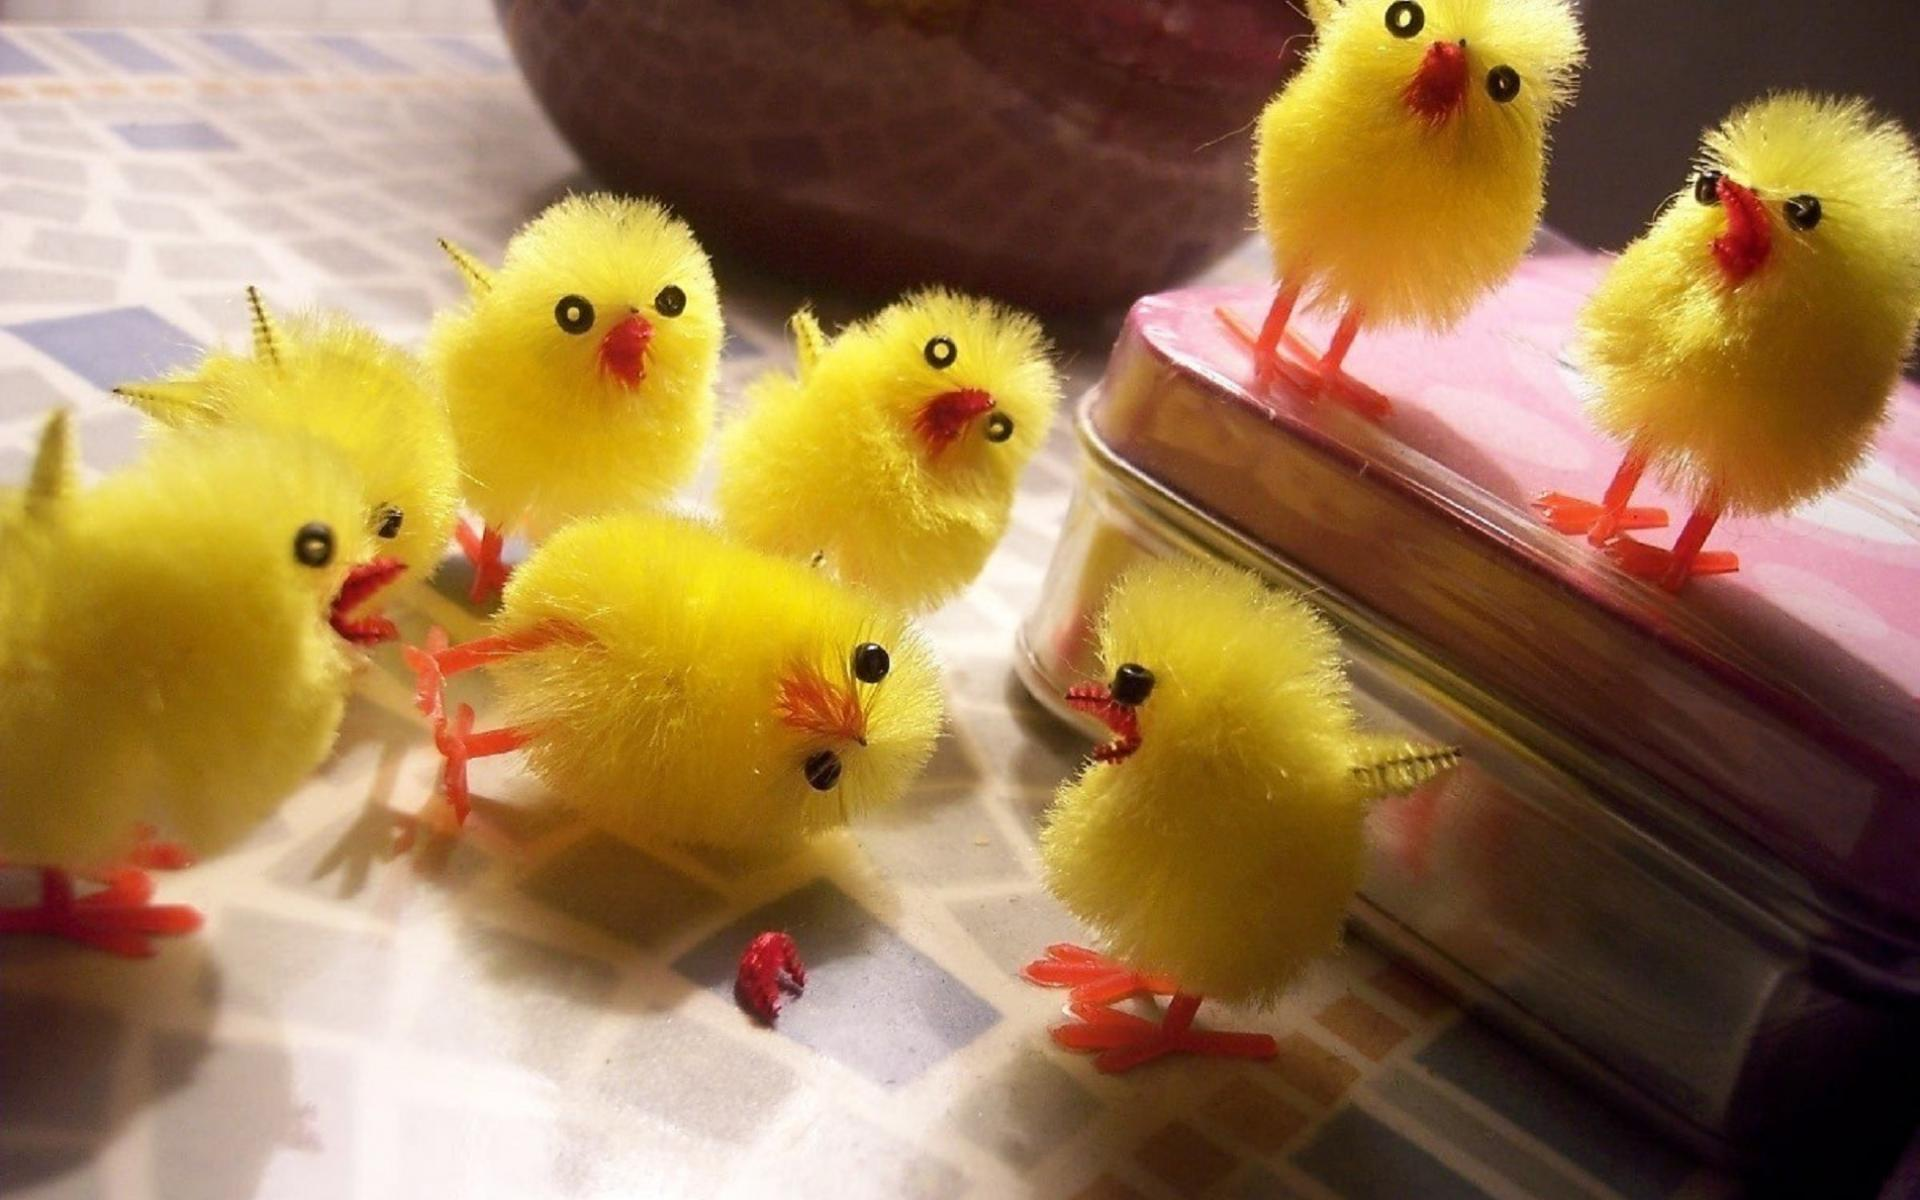 chicks birds cute toys chickens easter humor wallpaper 1920x1200 1920x1200